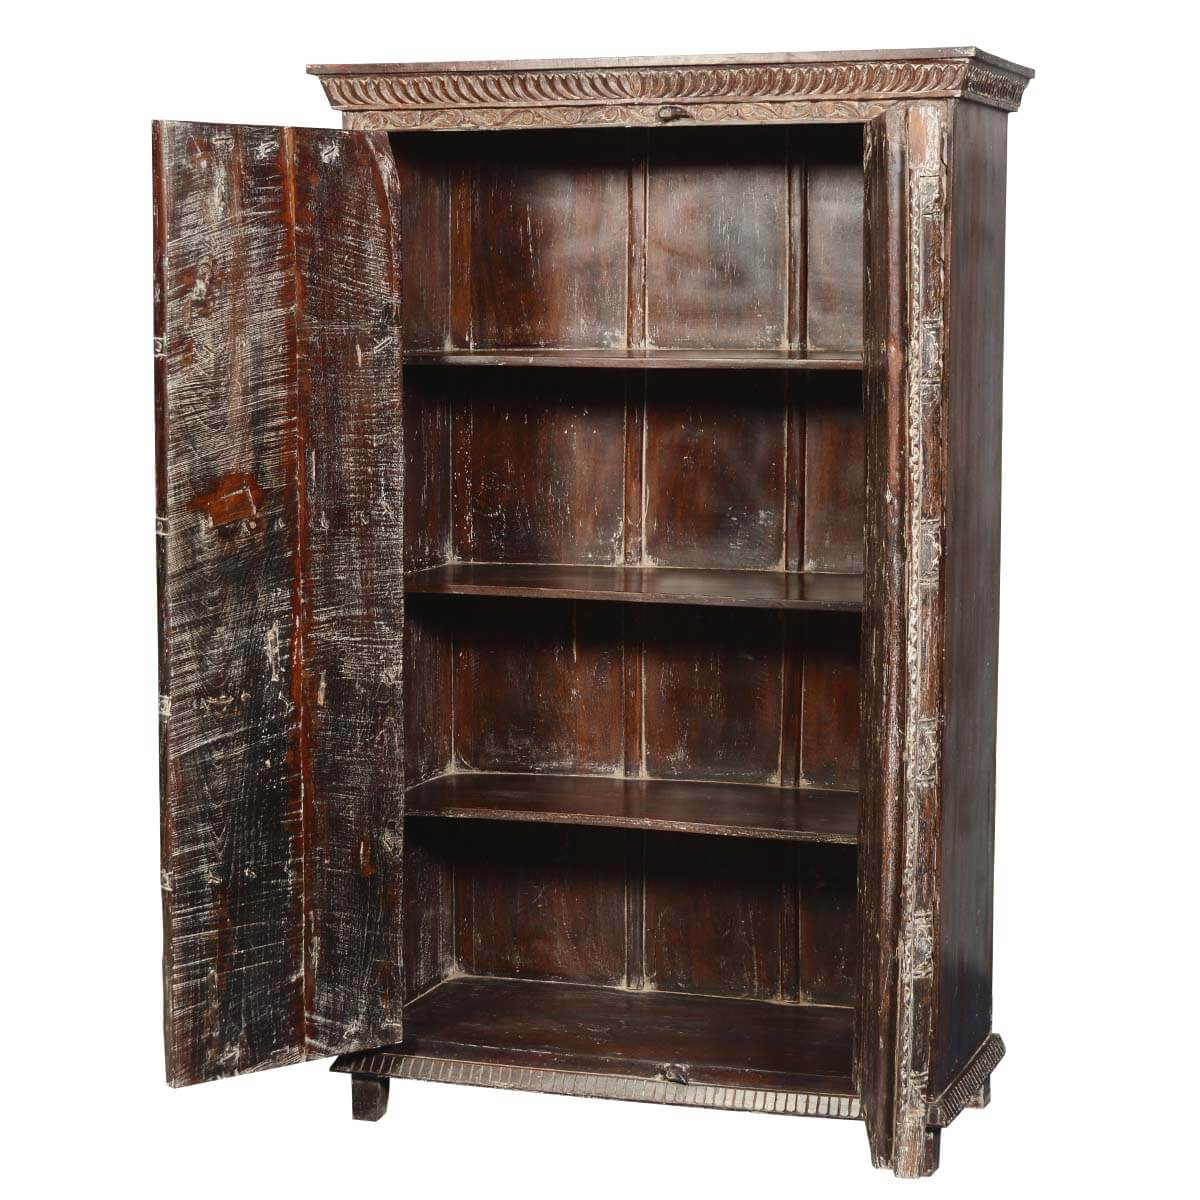 Marvelous photograph of  Rustic Reclaimed Wood Hampshire Bedroom Armoire Wardrobe Cabinet with #B48317 color and 1200x1200 pixels